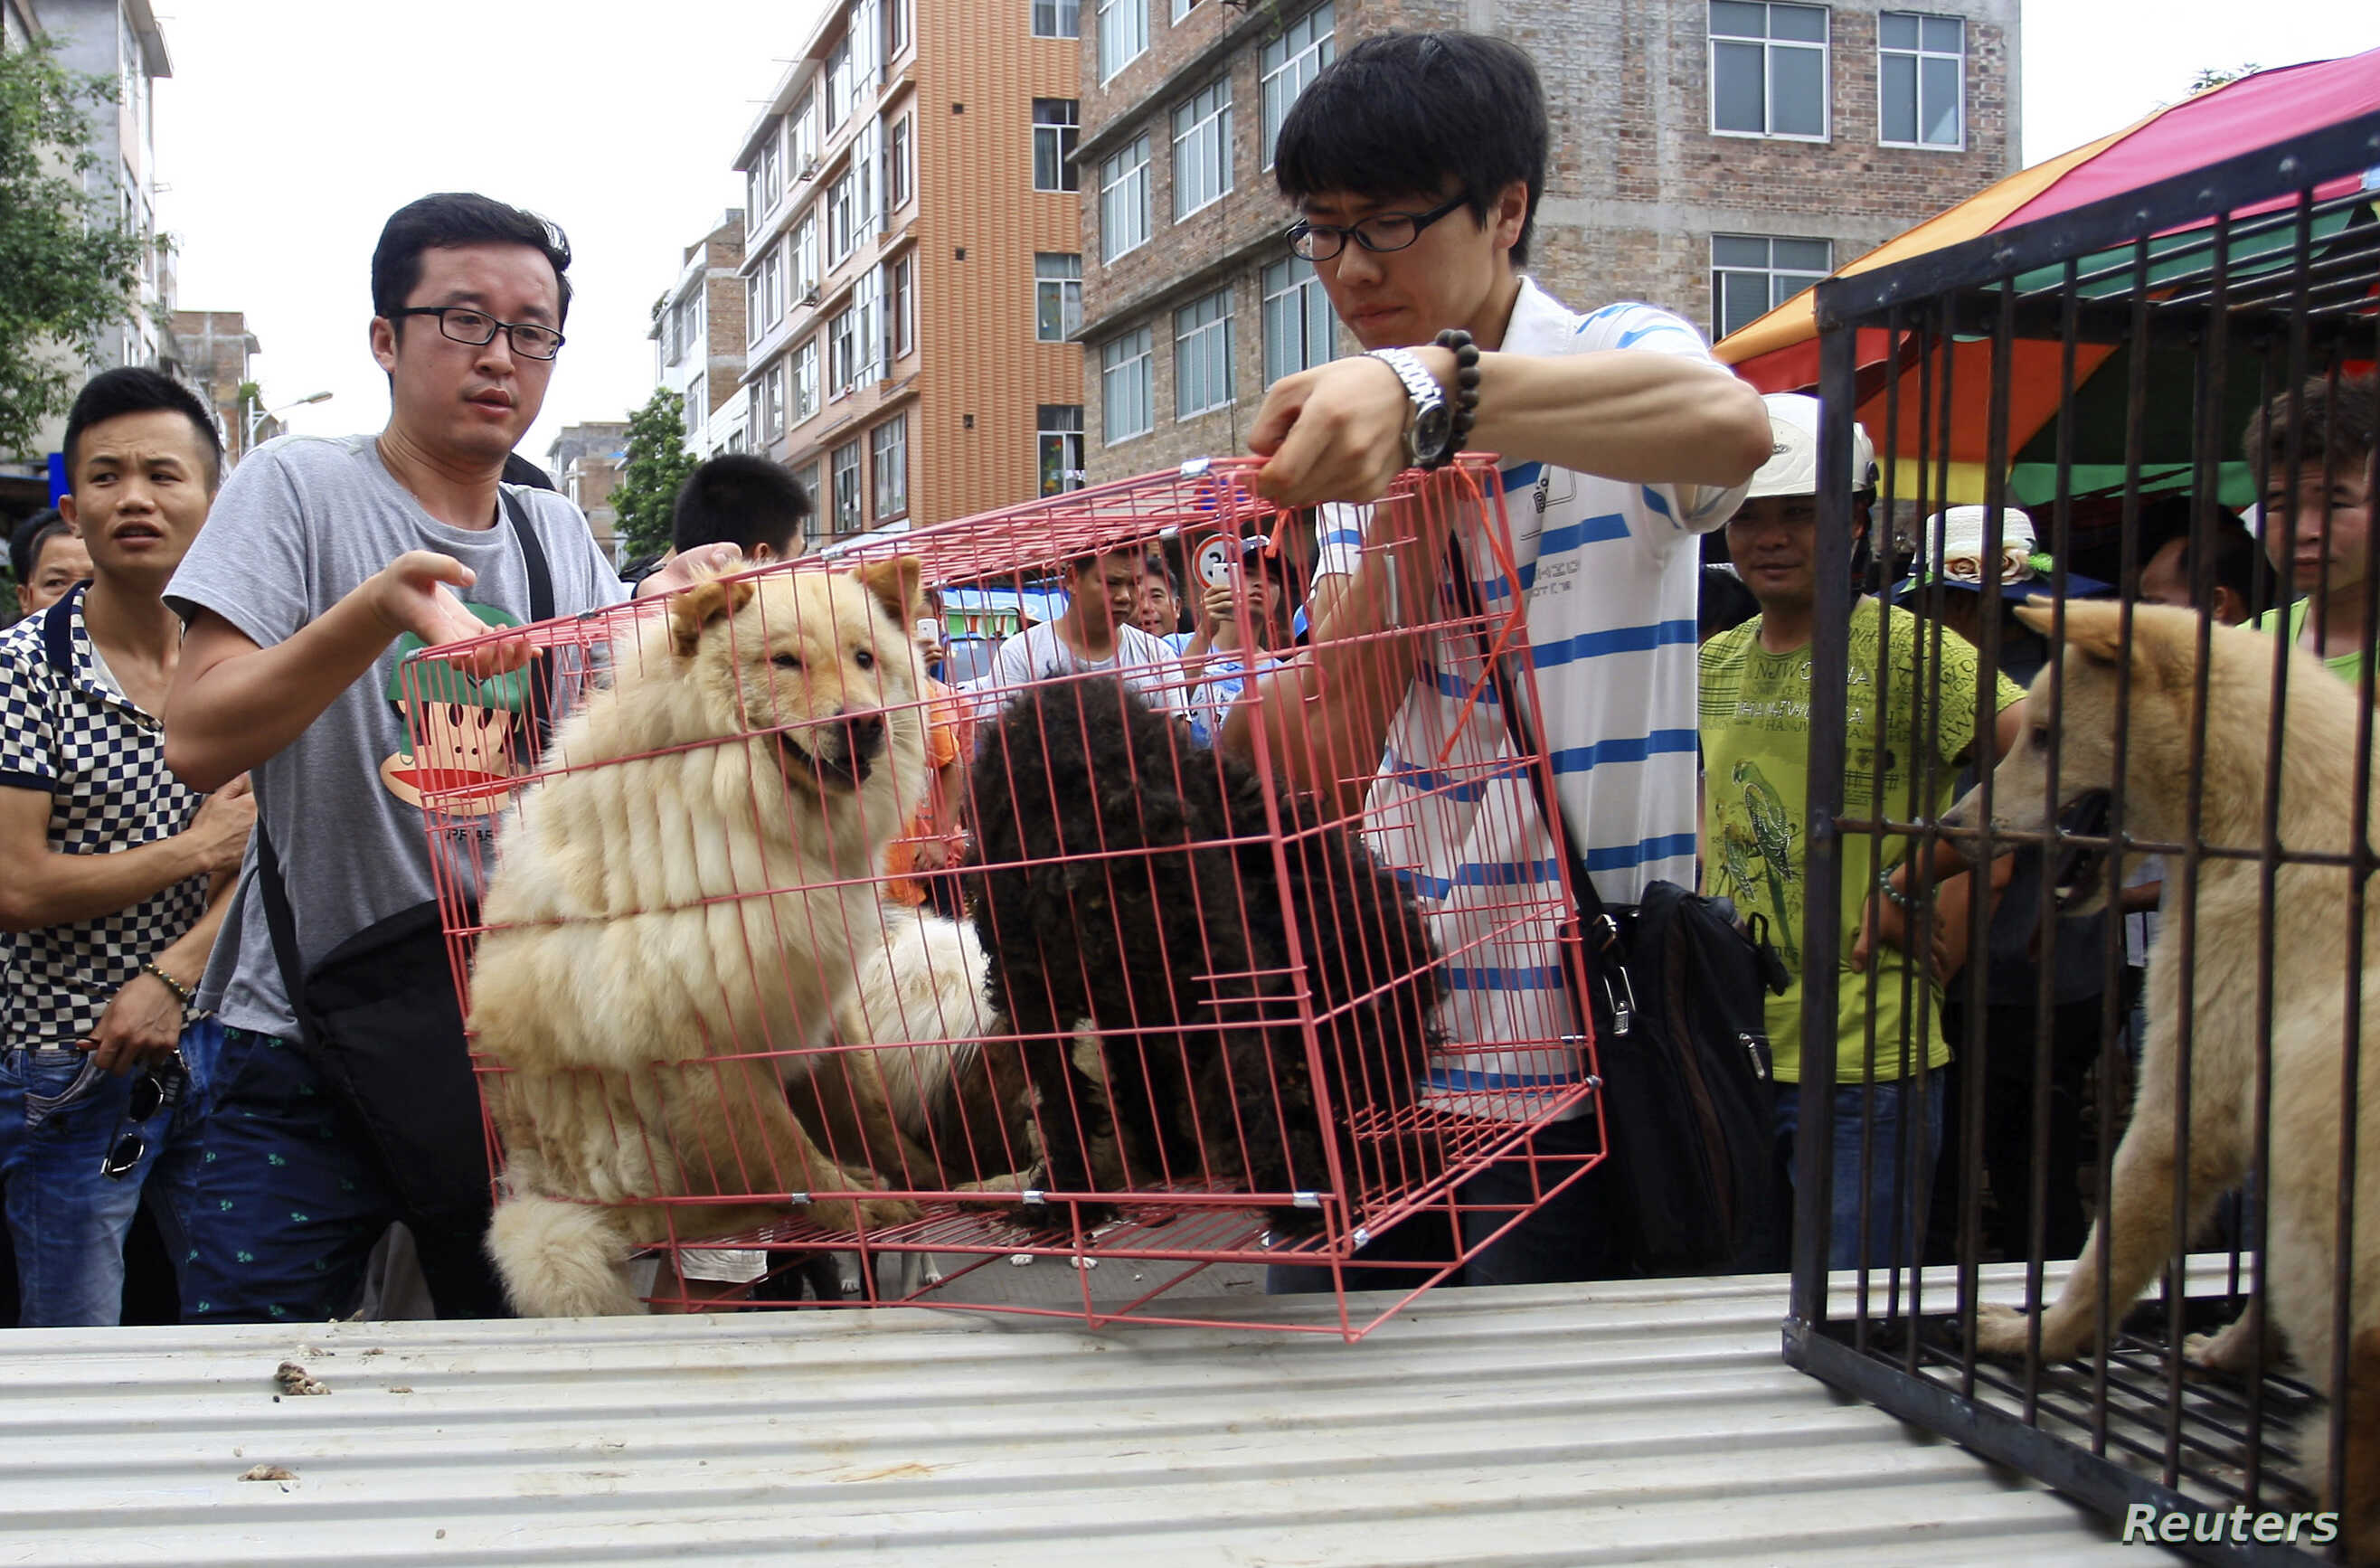 Rights Groups Criticize Use Of Dog Skin